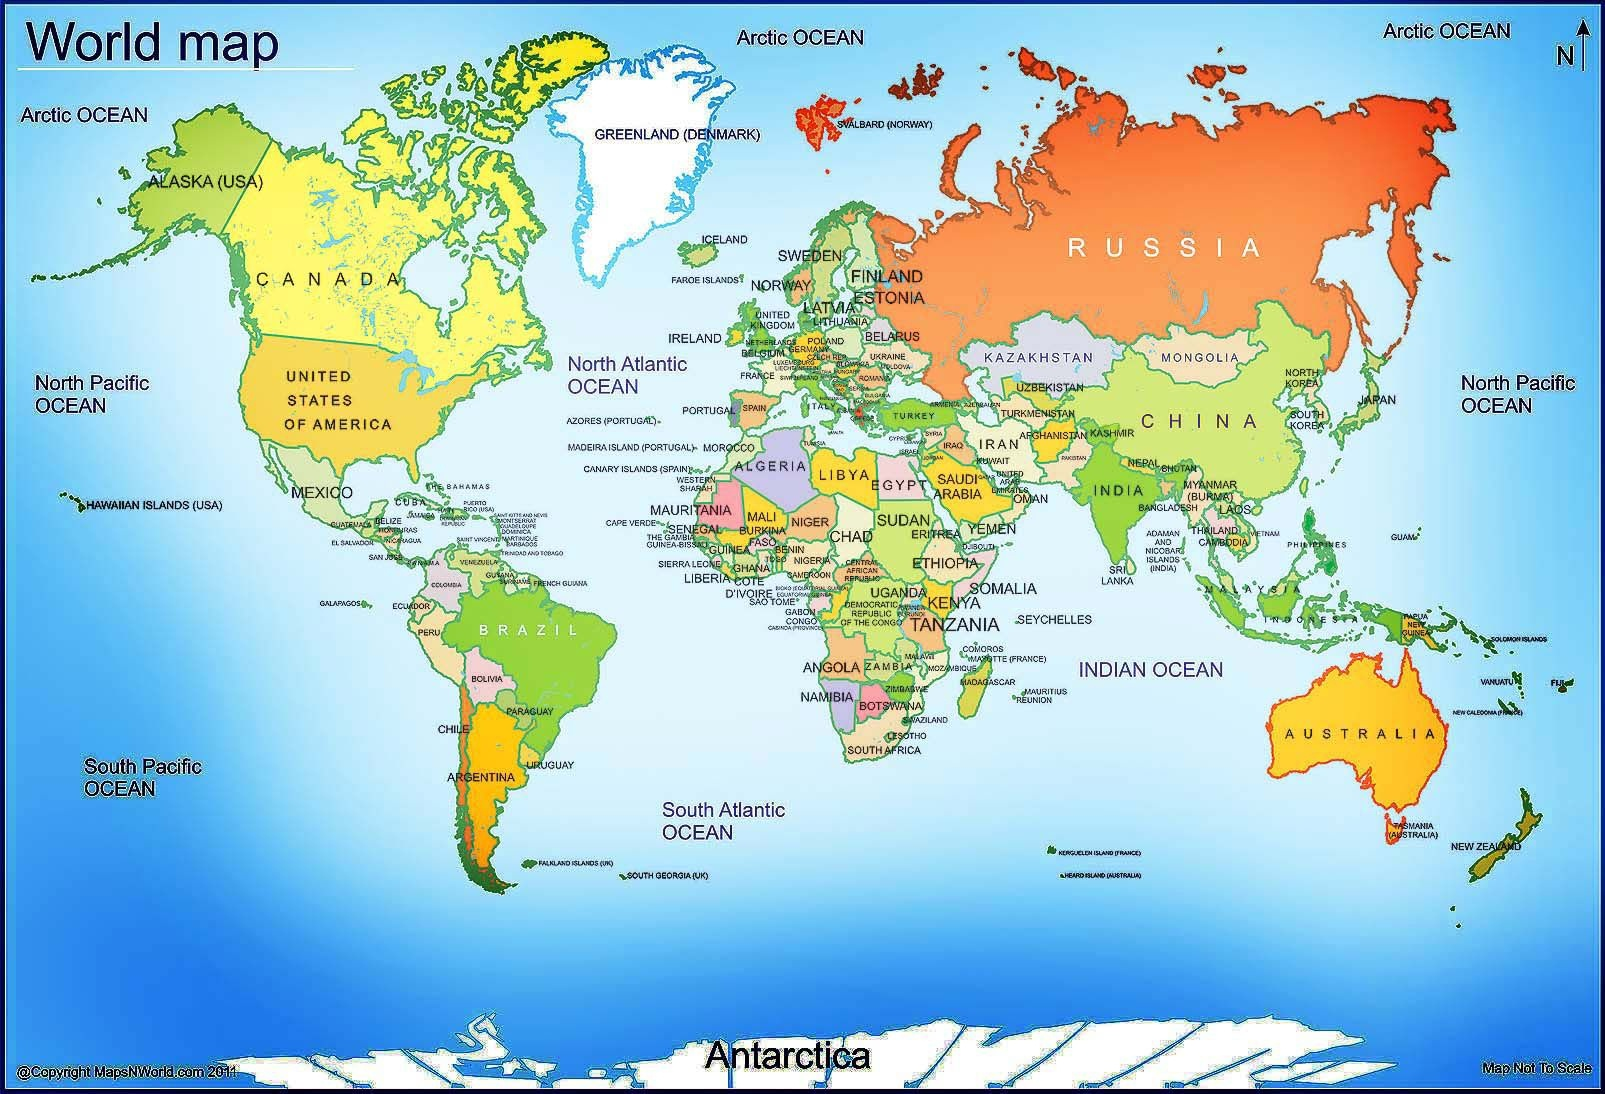 World Map - Free Large Images | Maps | World Map With Countries - Free Printable World Map Images